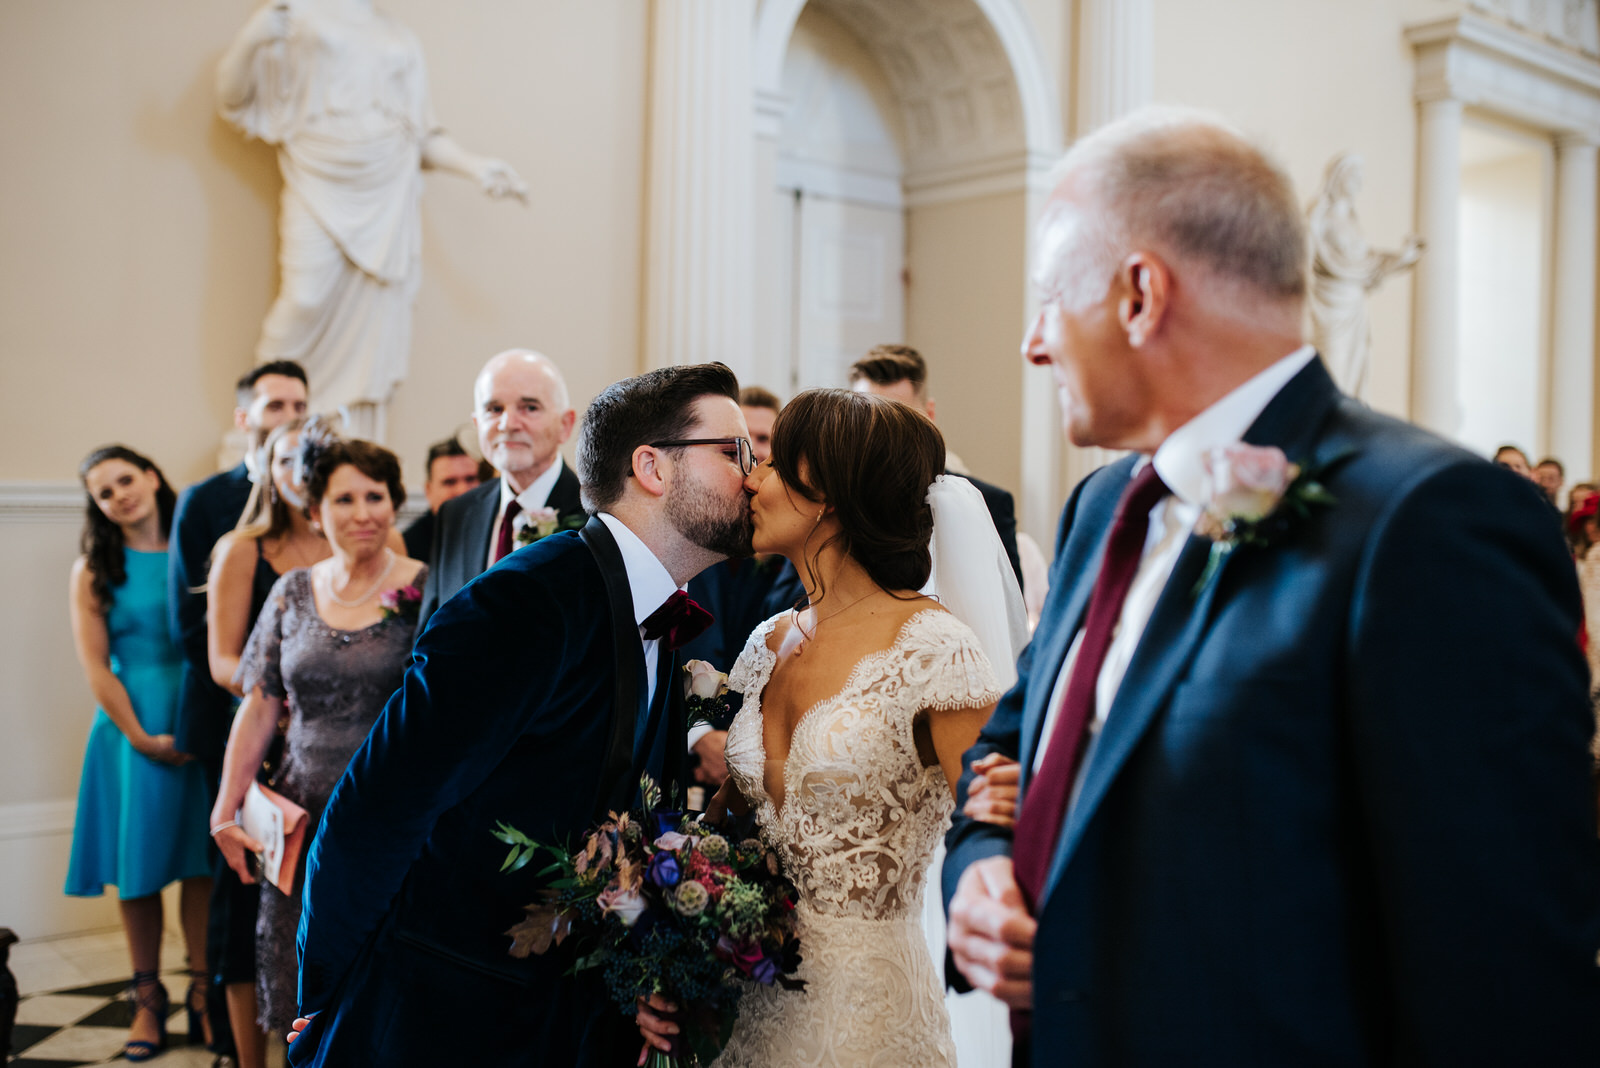 Bride and groom see each other at the front of the aisle and kiss